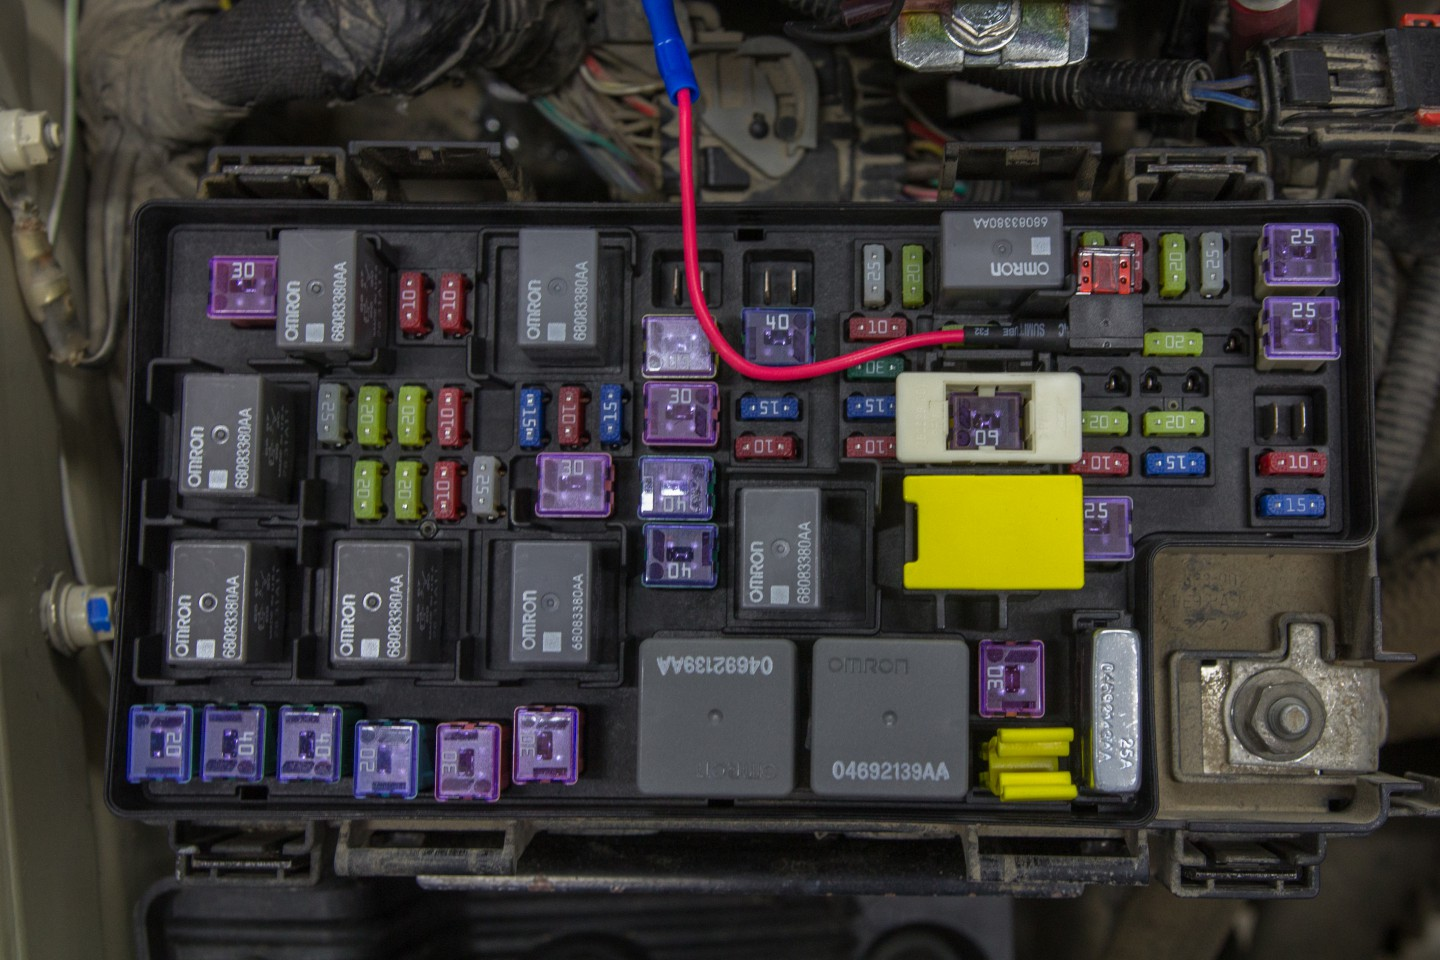 How Do You Wire A Fuse Box To Ohio Code 39 Wiring Diagram Images Additionally 1976 Vw Beetle Also Thomas Mini Add Circuit Holder In The Jk